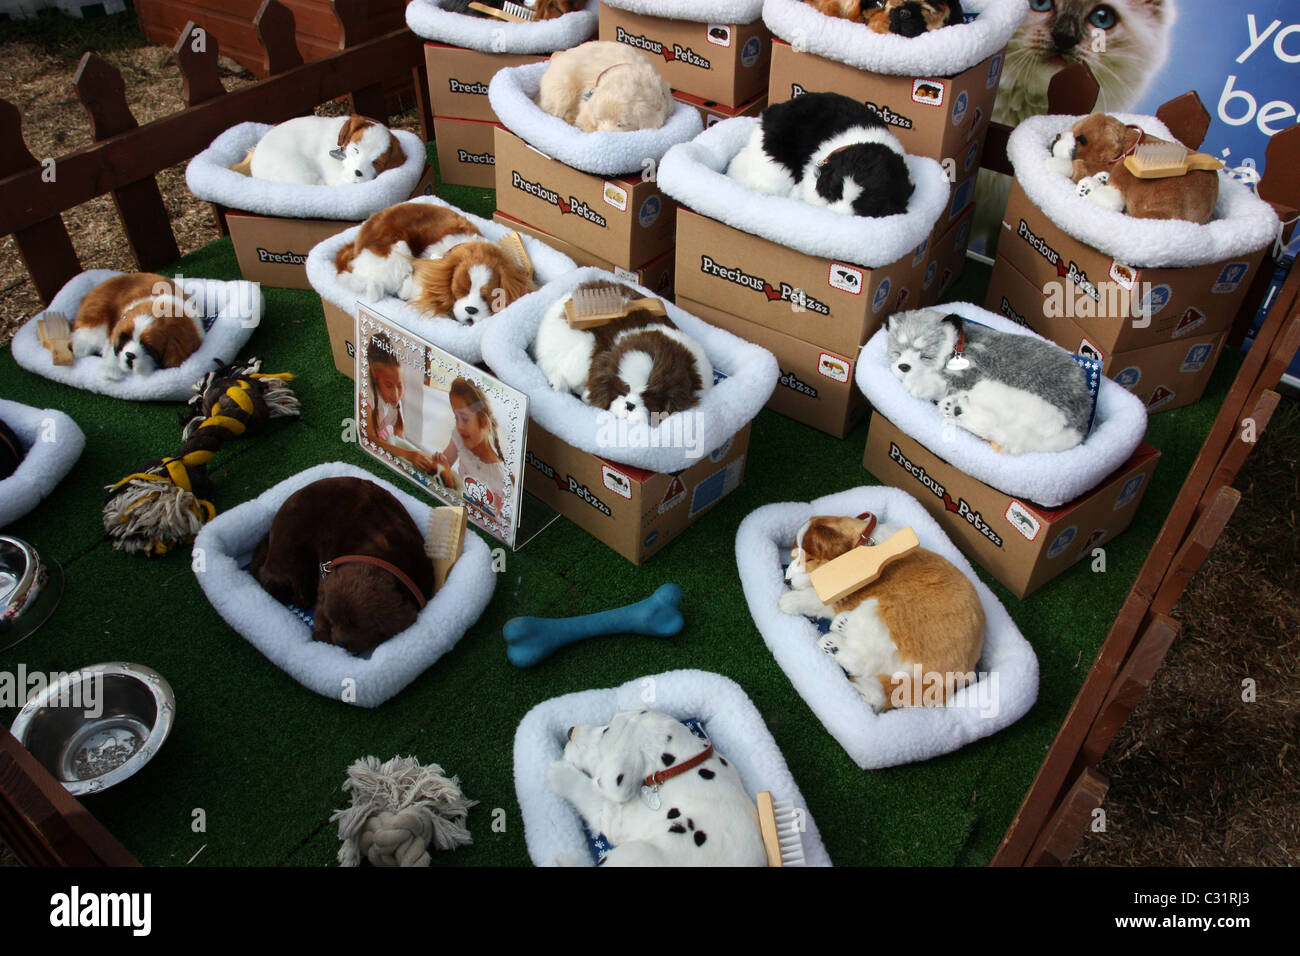 Toy Dogs - Stock Image